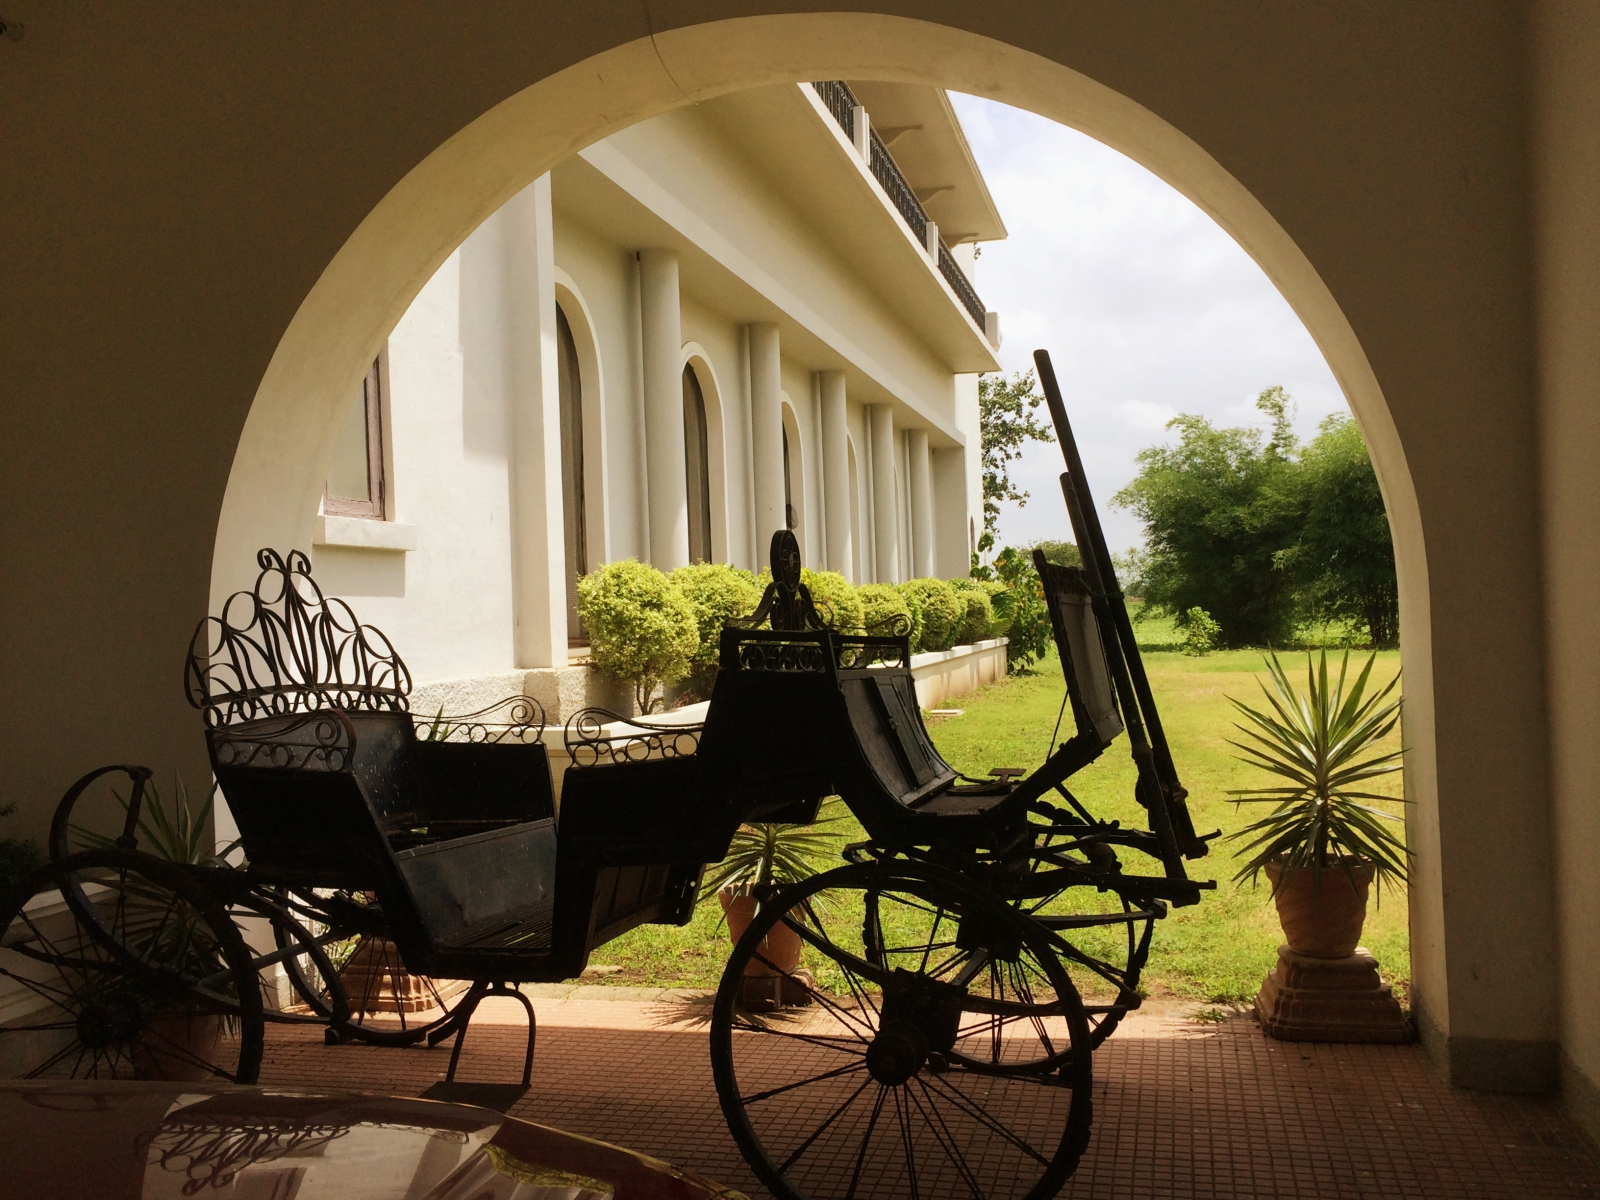 Jhira Bagh Royal Carriage